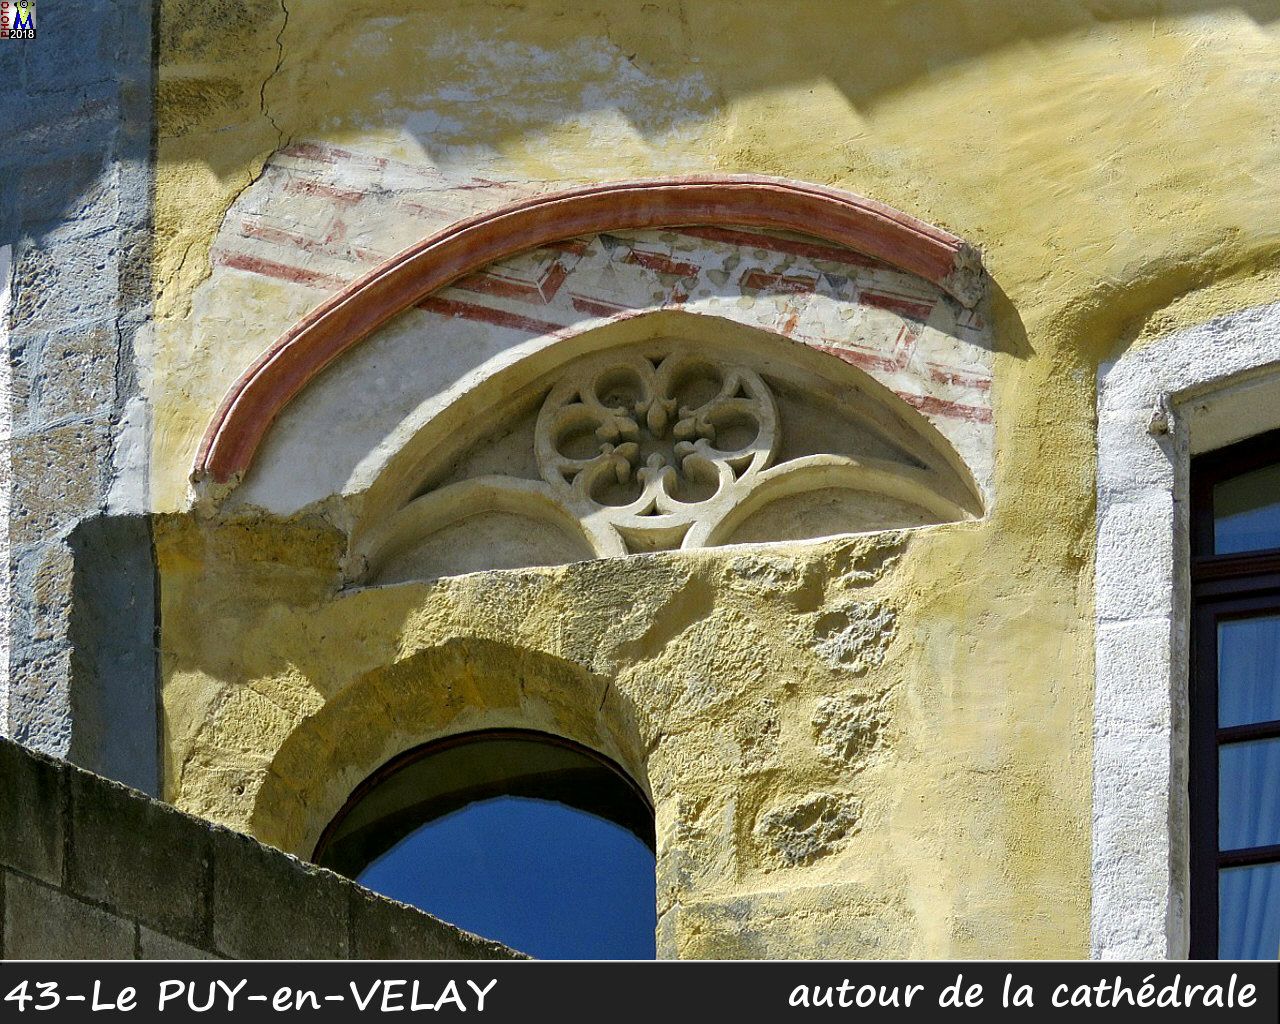 43PUY-EN-VELAY_cathedrale_410.jpg